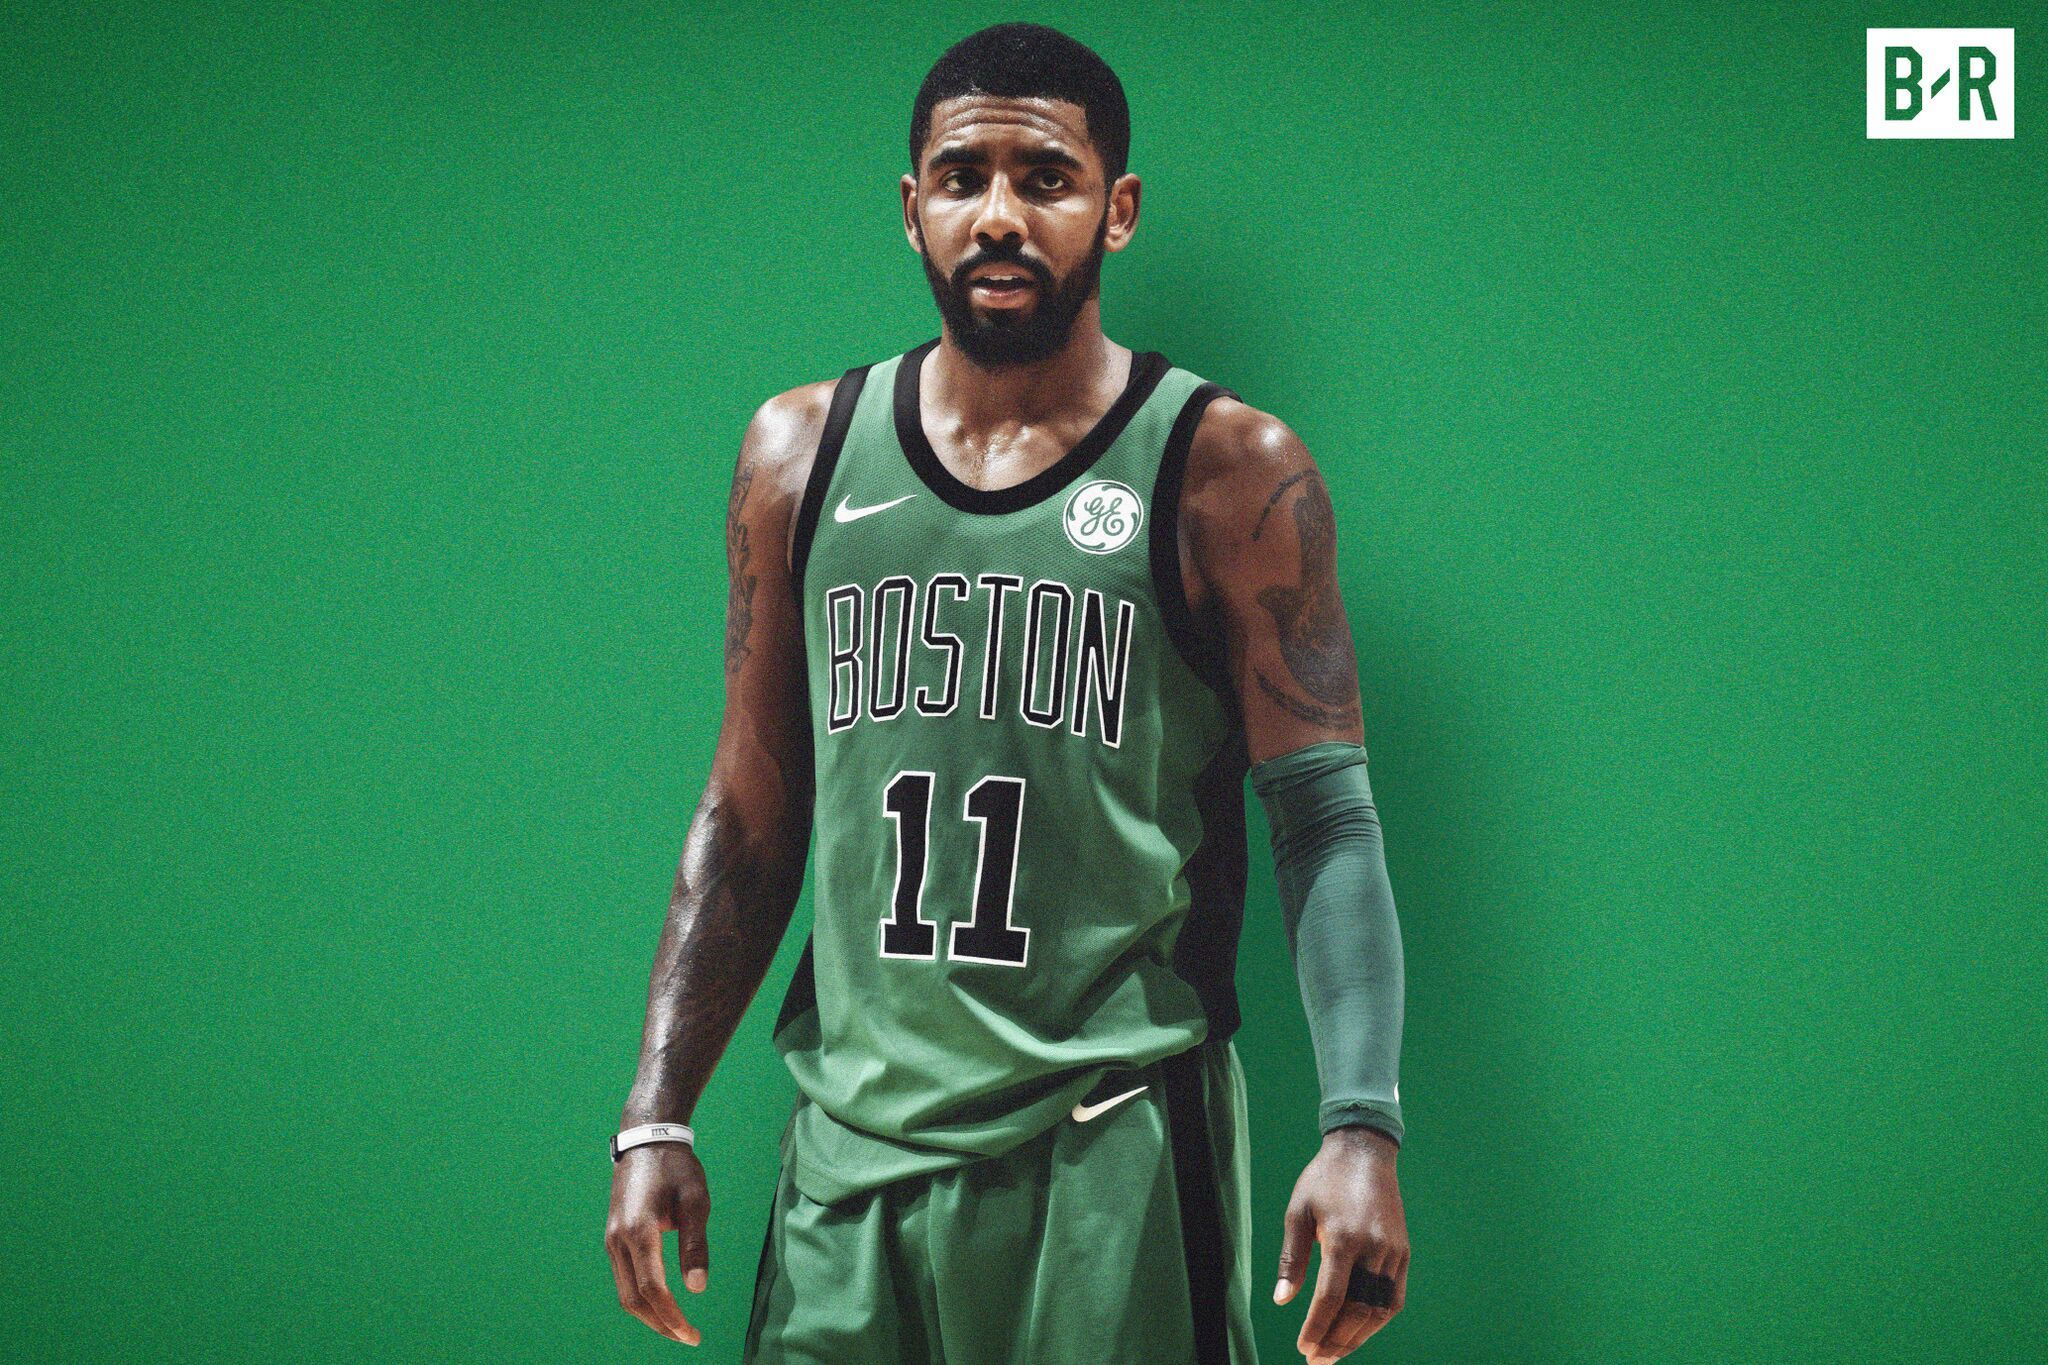 The Throwback Jersey Every Team Needs In The Nba Asap Bleacher Report Latest News Videos And Highlights